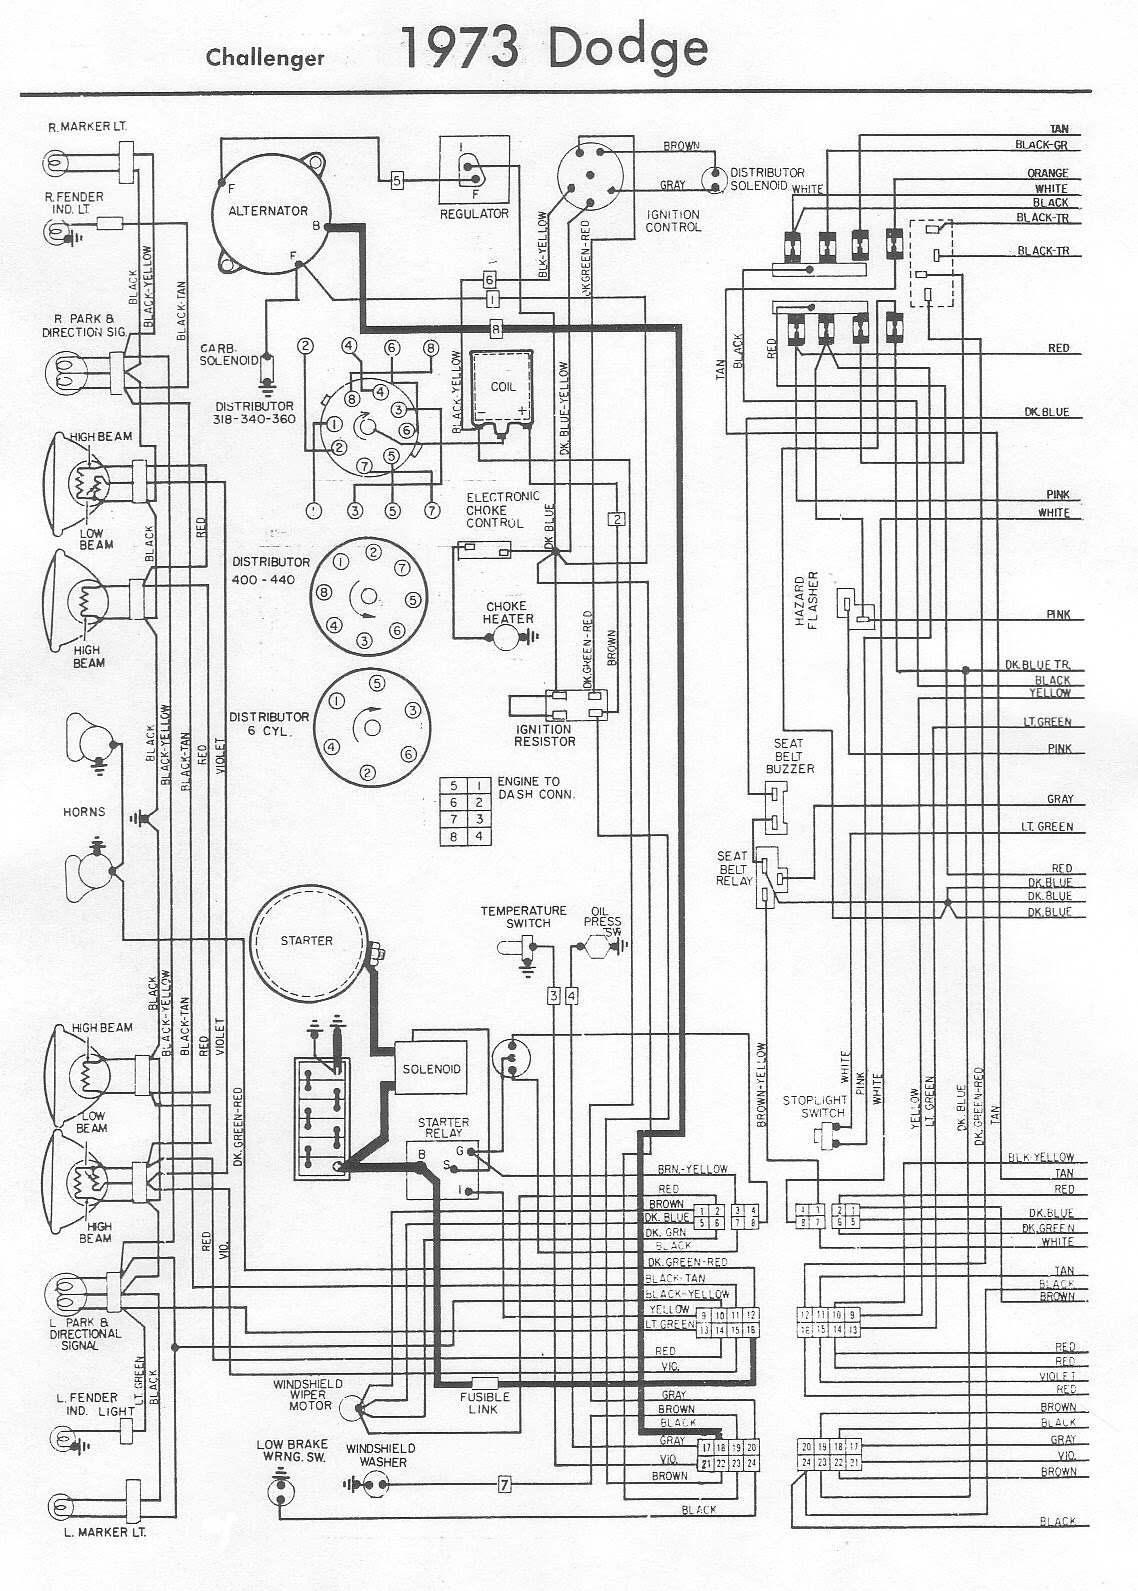 73 Wiring Diagram The Dodge Challenger Message Board